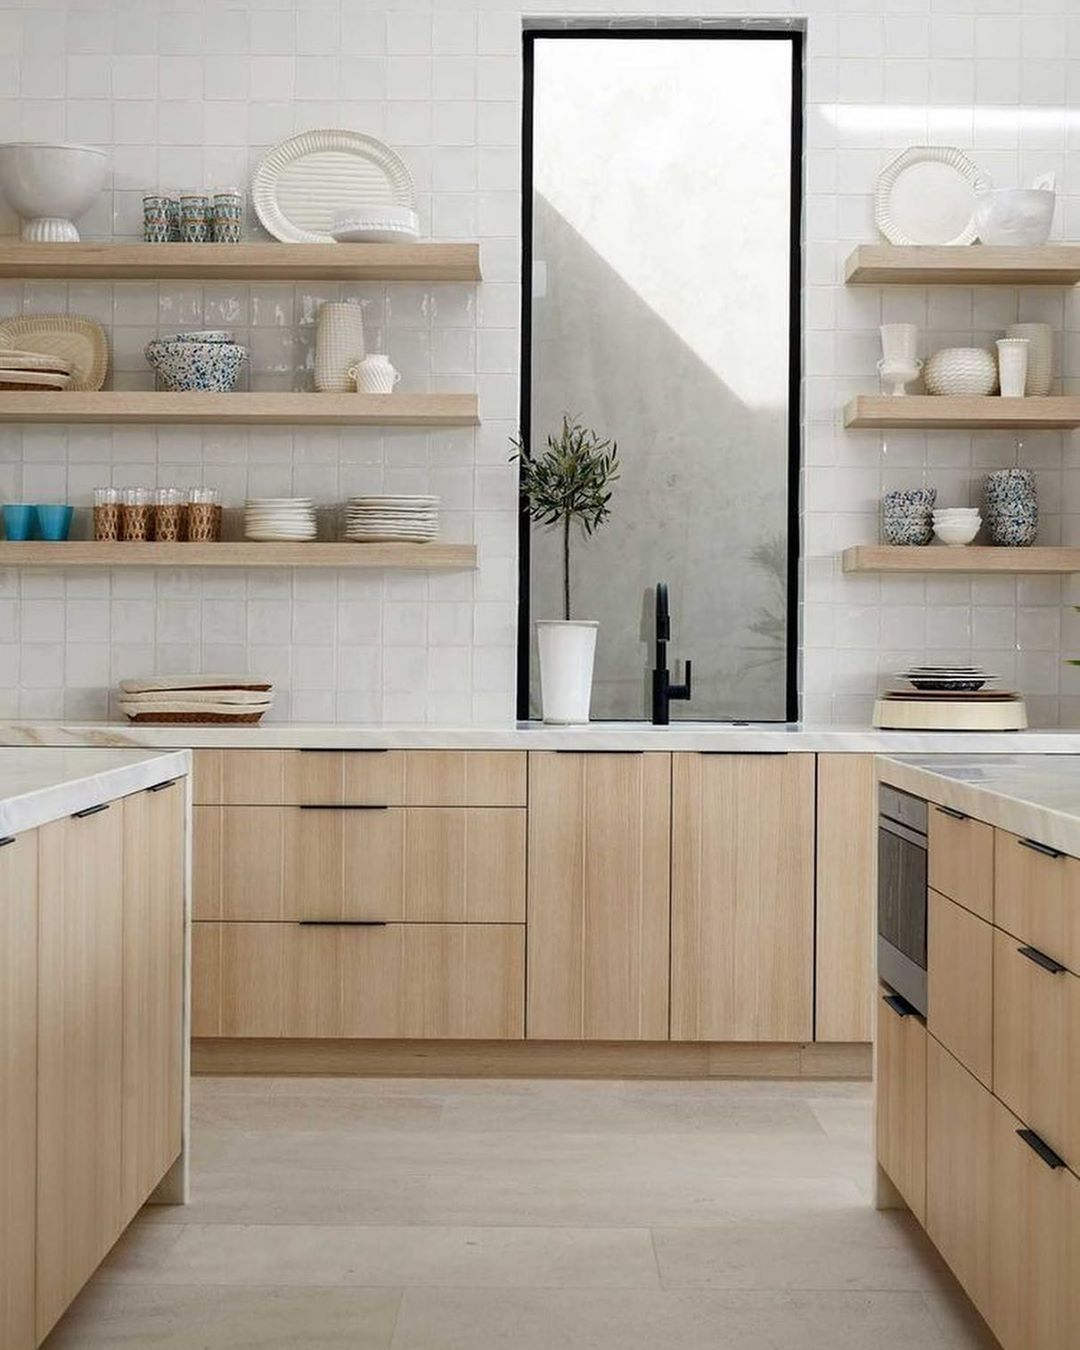 El Pop Interiors On Instagram Just Shelves On The Kitchen Walls Above The Work Top No In 2020 Scandinavian Kitchen Design Modern Kitchen Design Kitchen Design Small